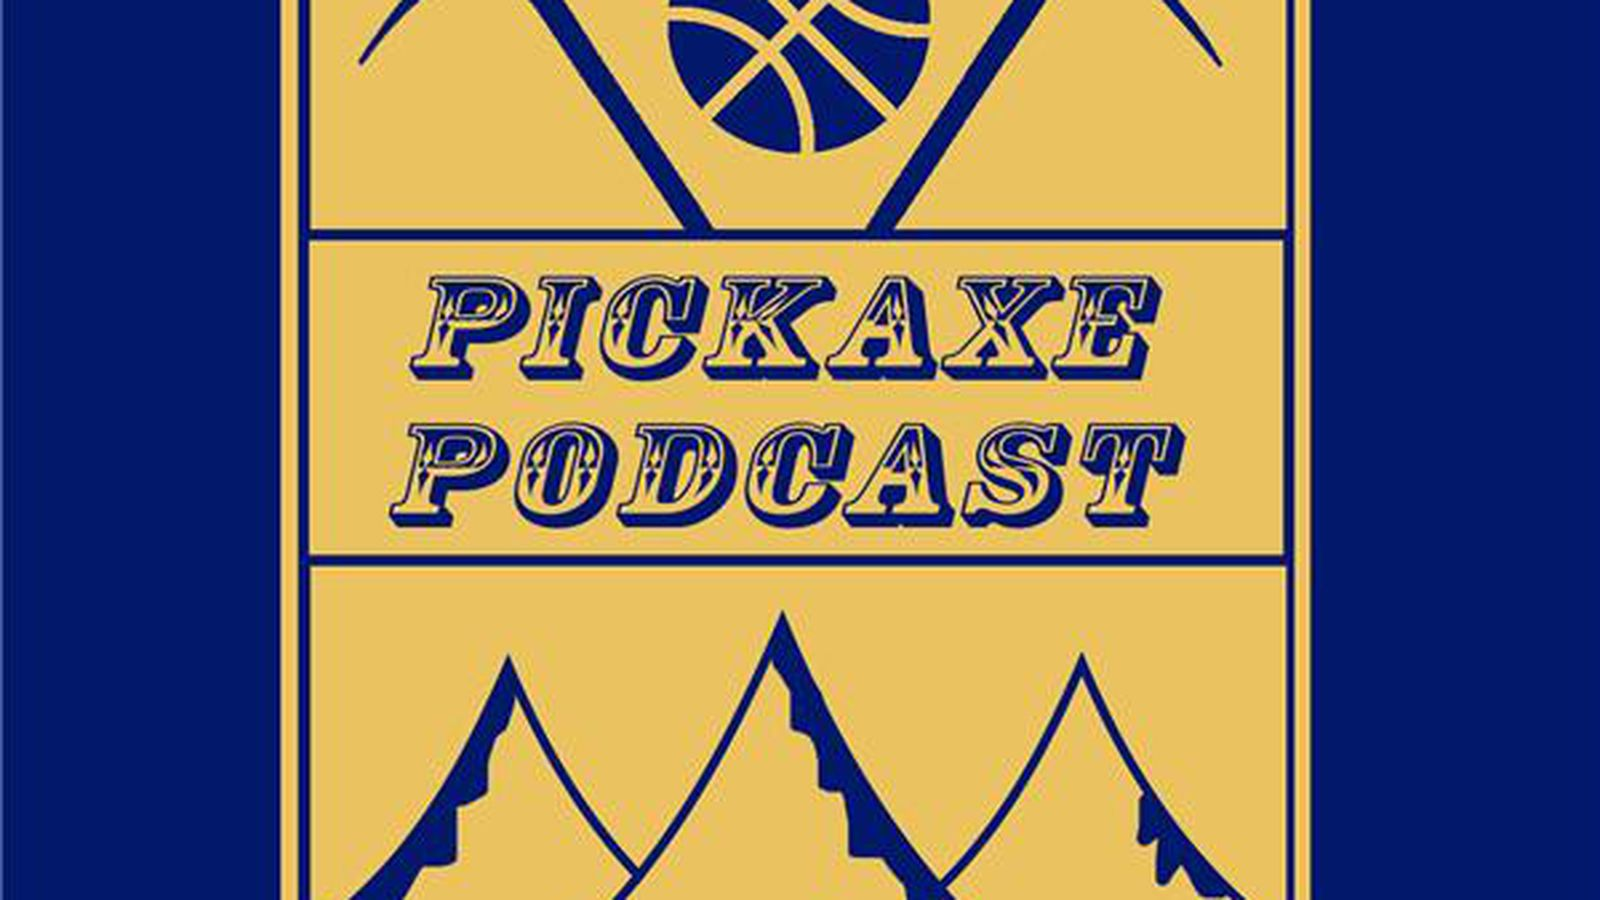 Pickaxe_podcast.0